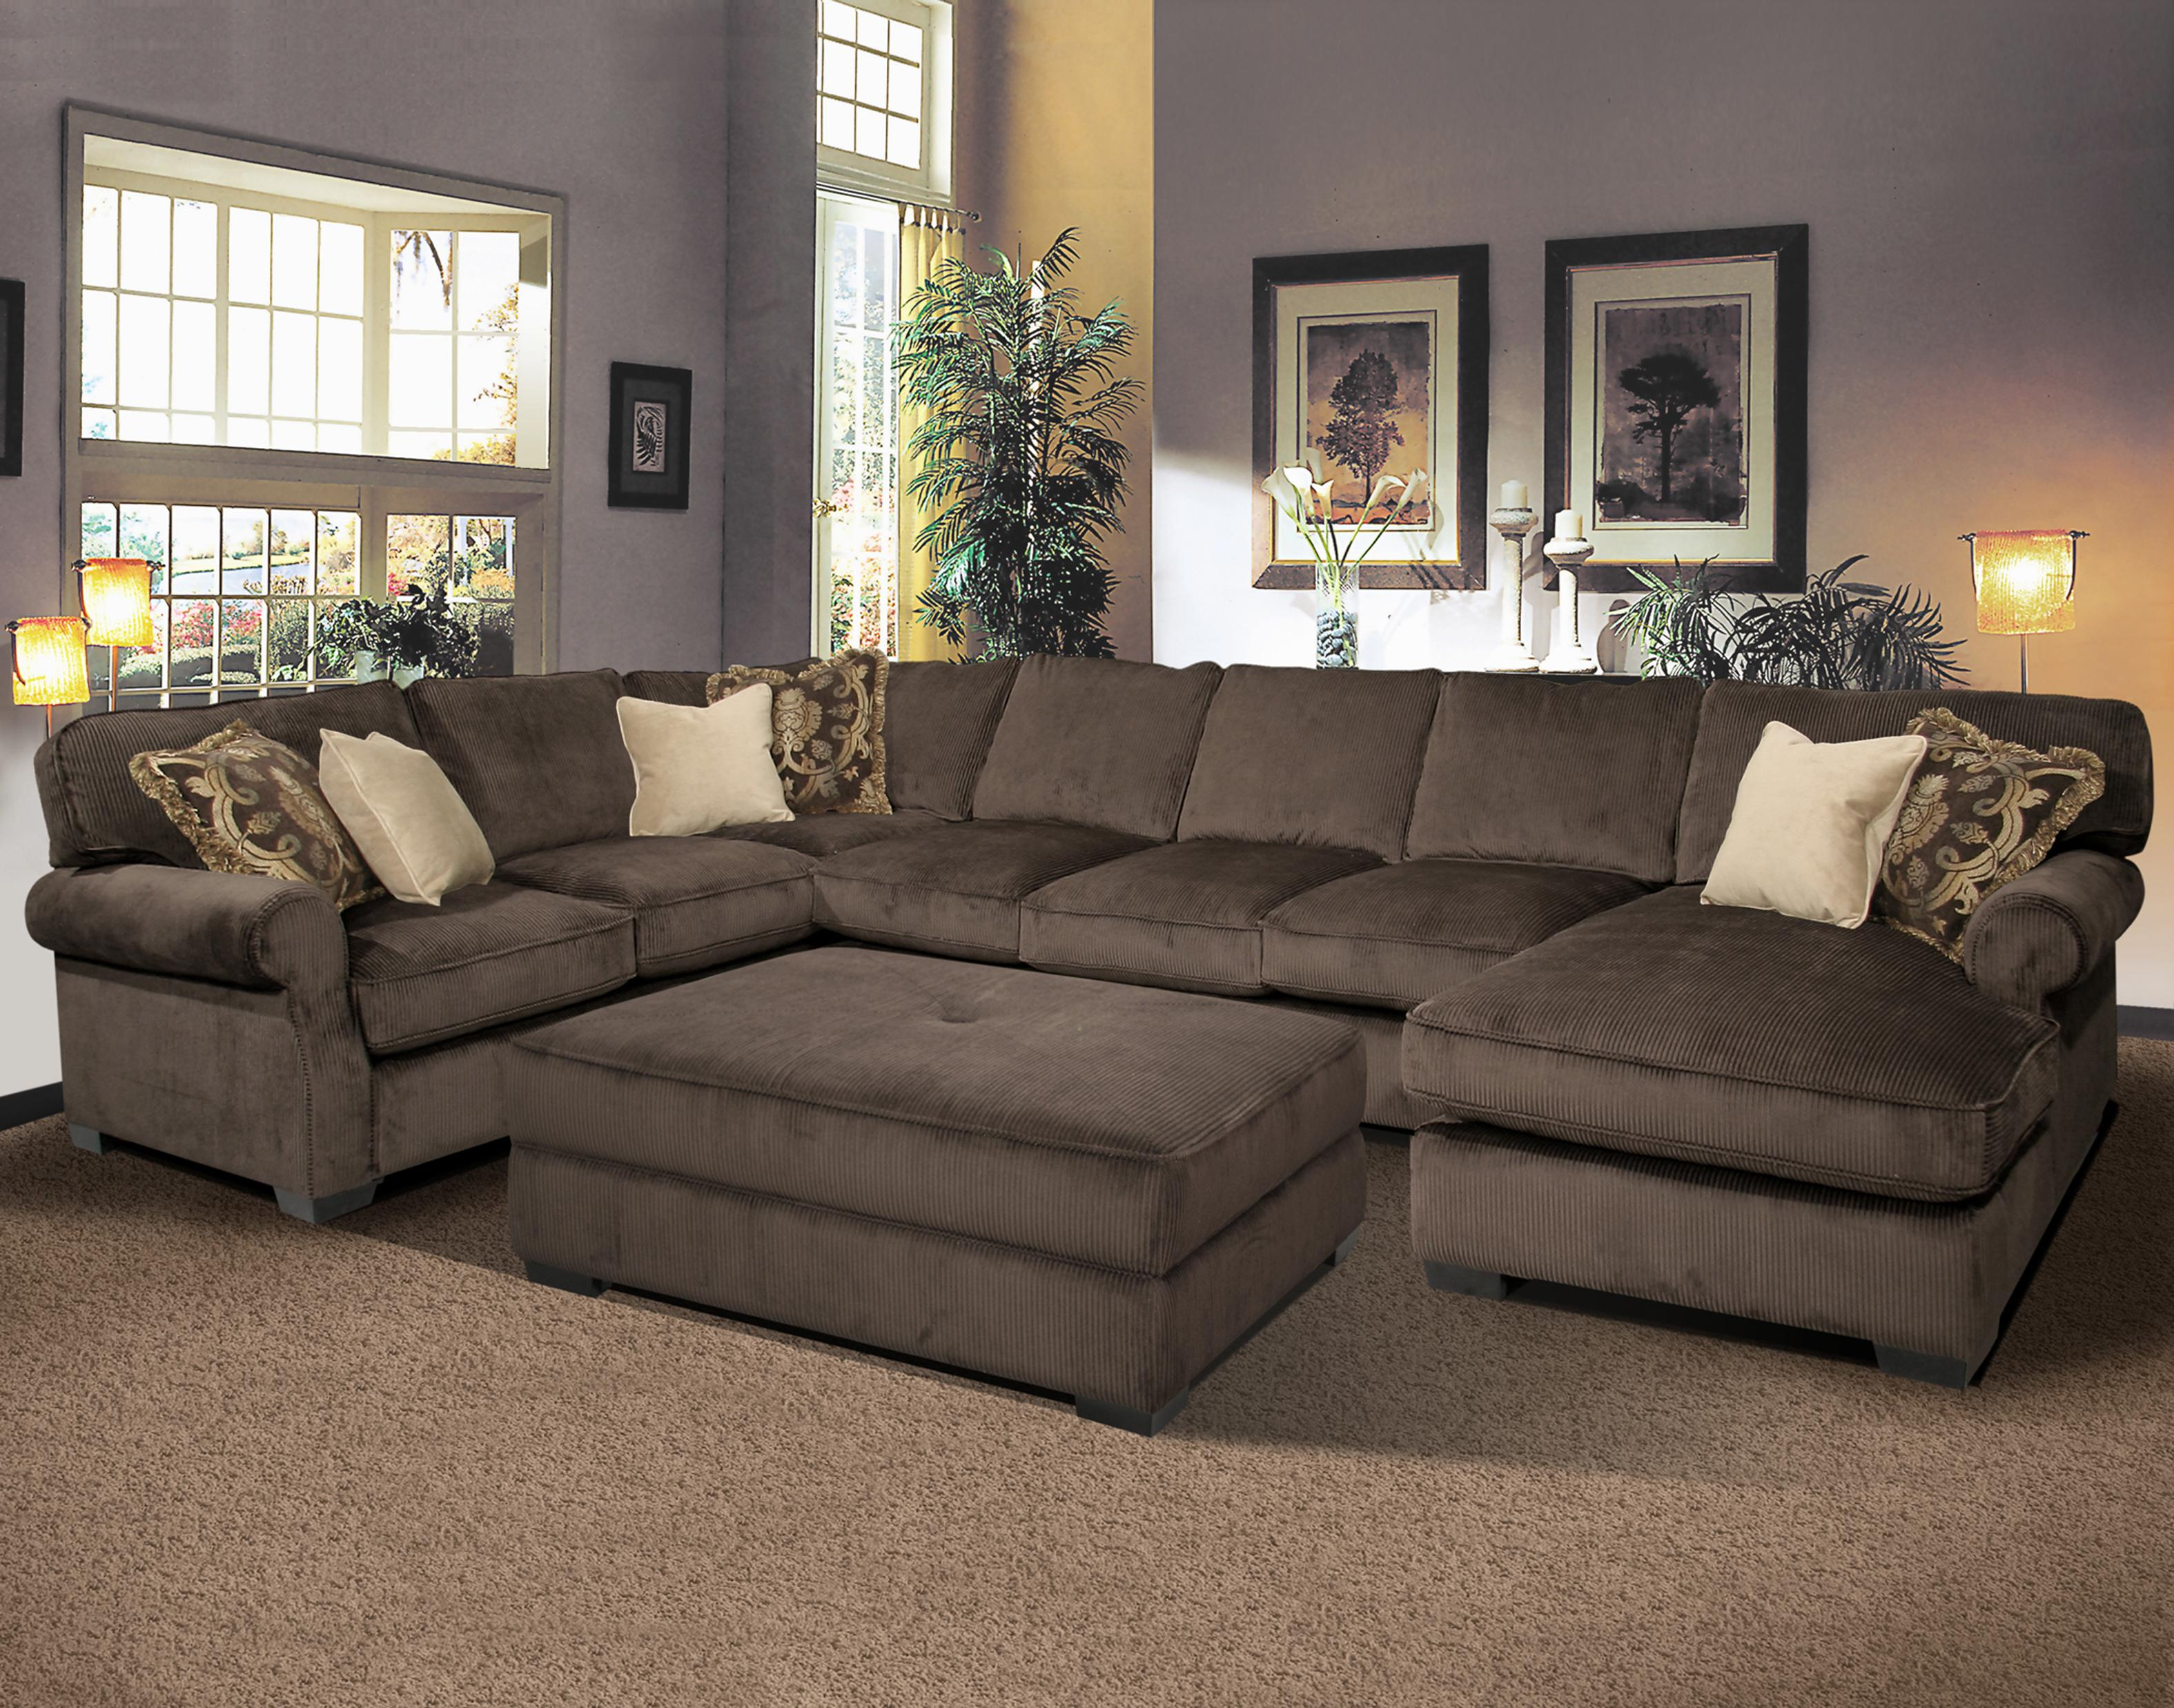 New Deep Set Couch 25 Living Room Sofa Inspiration with Deep Set Couch